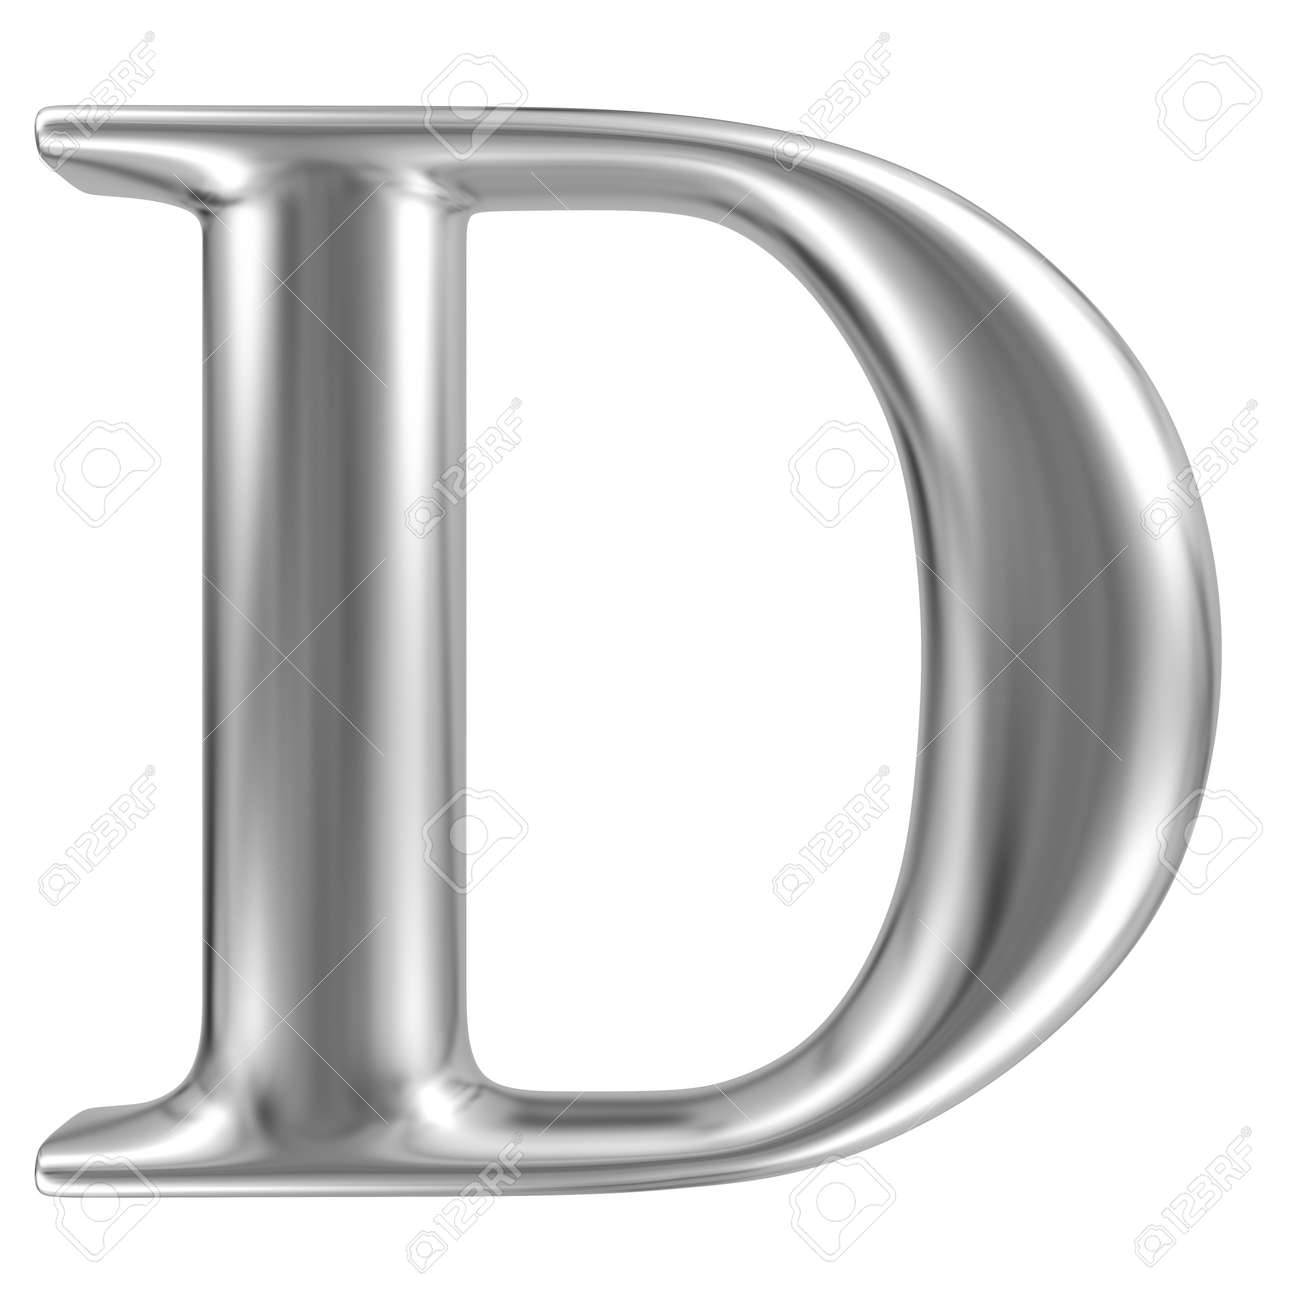 Aluminium Font Letter D Stock Photo, Picture And Royalty Free